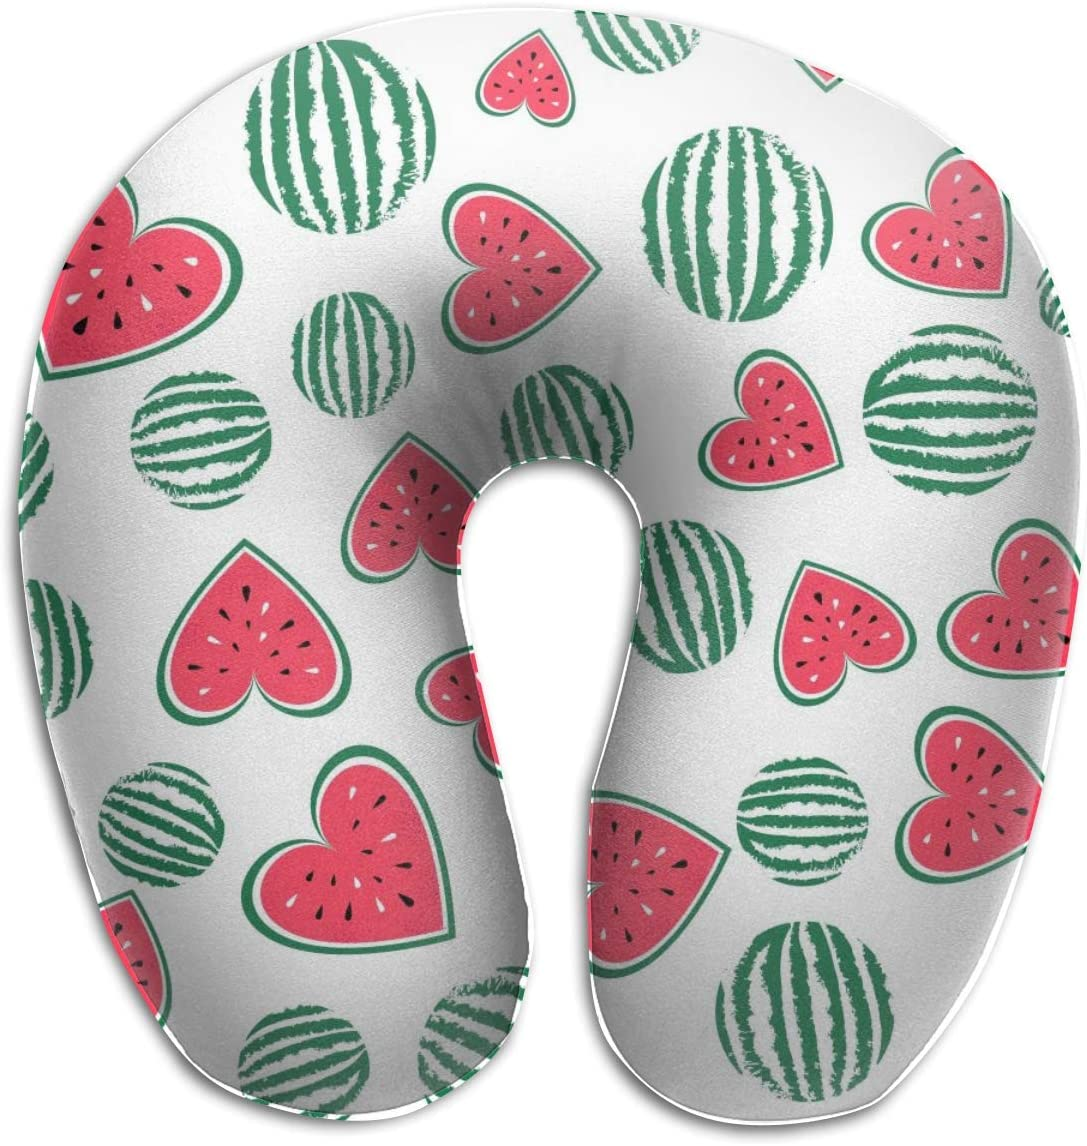 HijingTT Watermelon Loving Heart U Shaped Neck Pillow Comfortable Soft Microfiber Neck-Supportive Travel Pillow for Home, Neck Pain